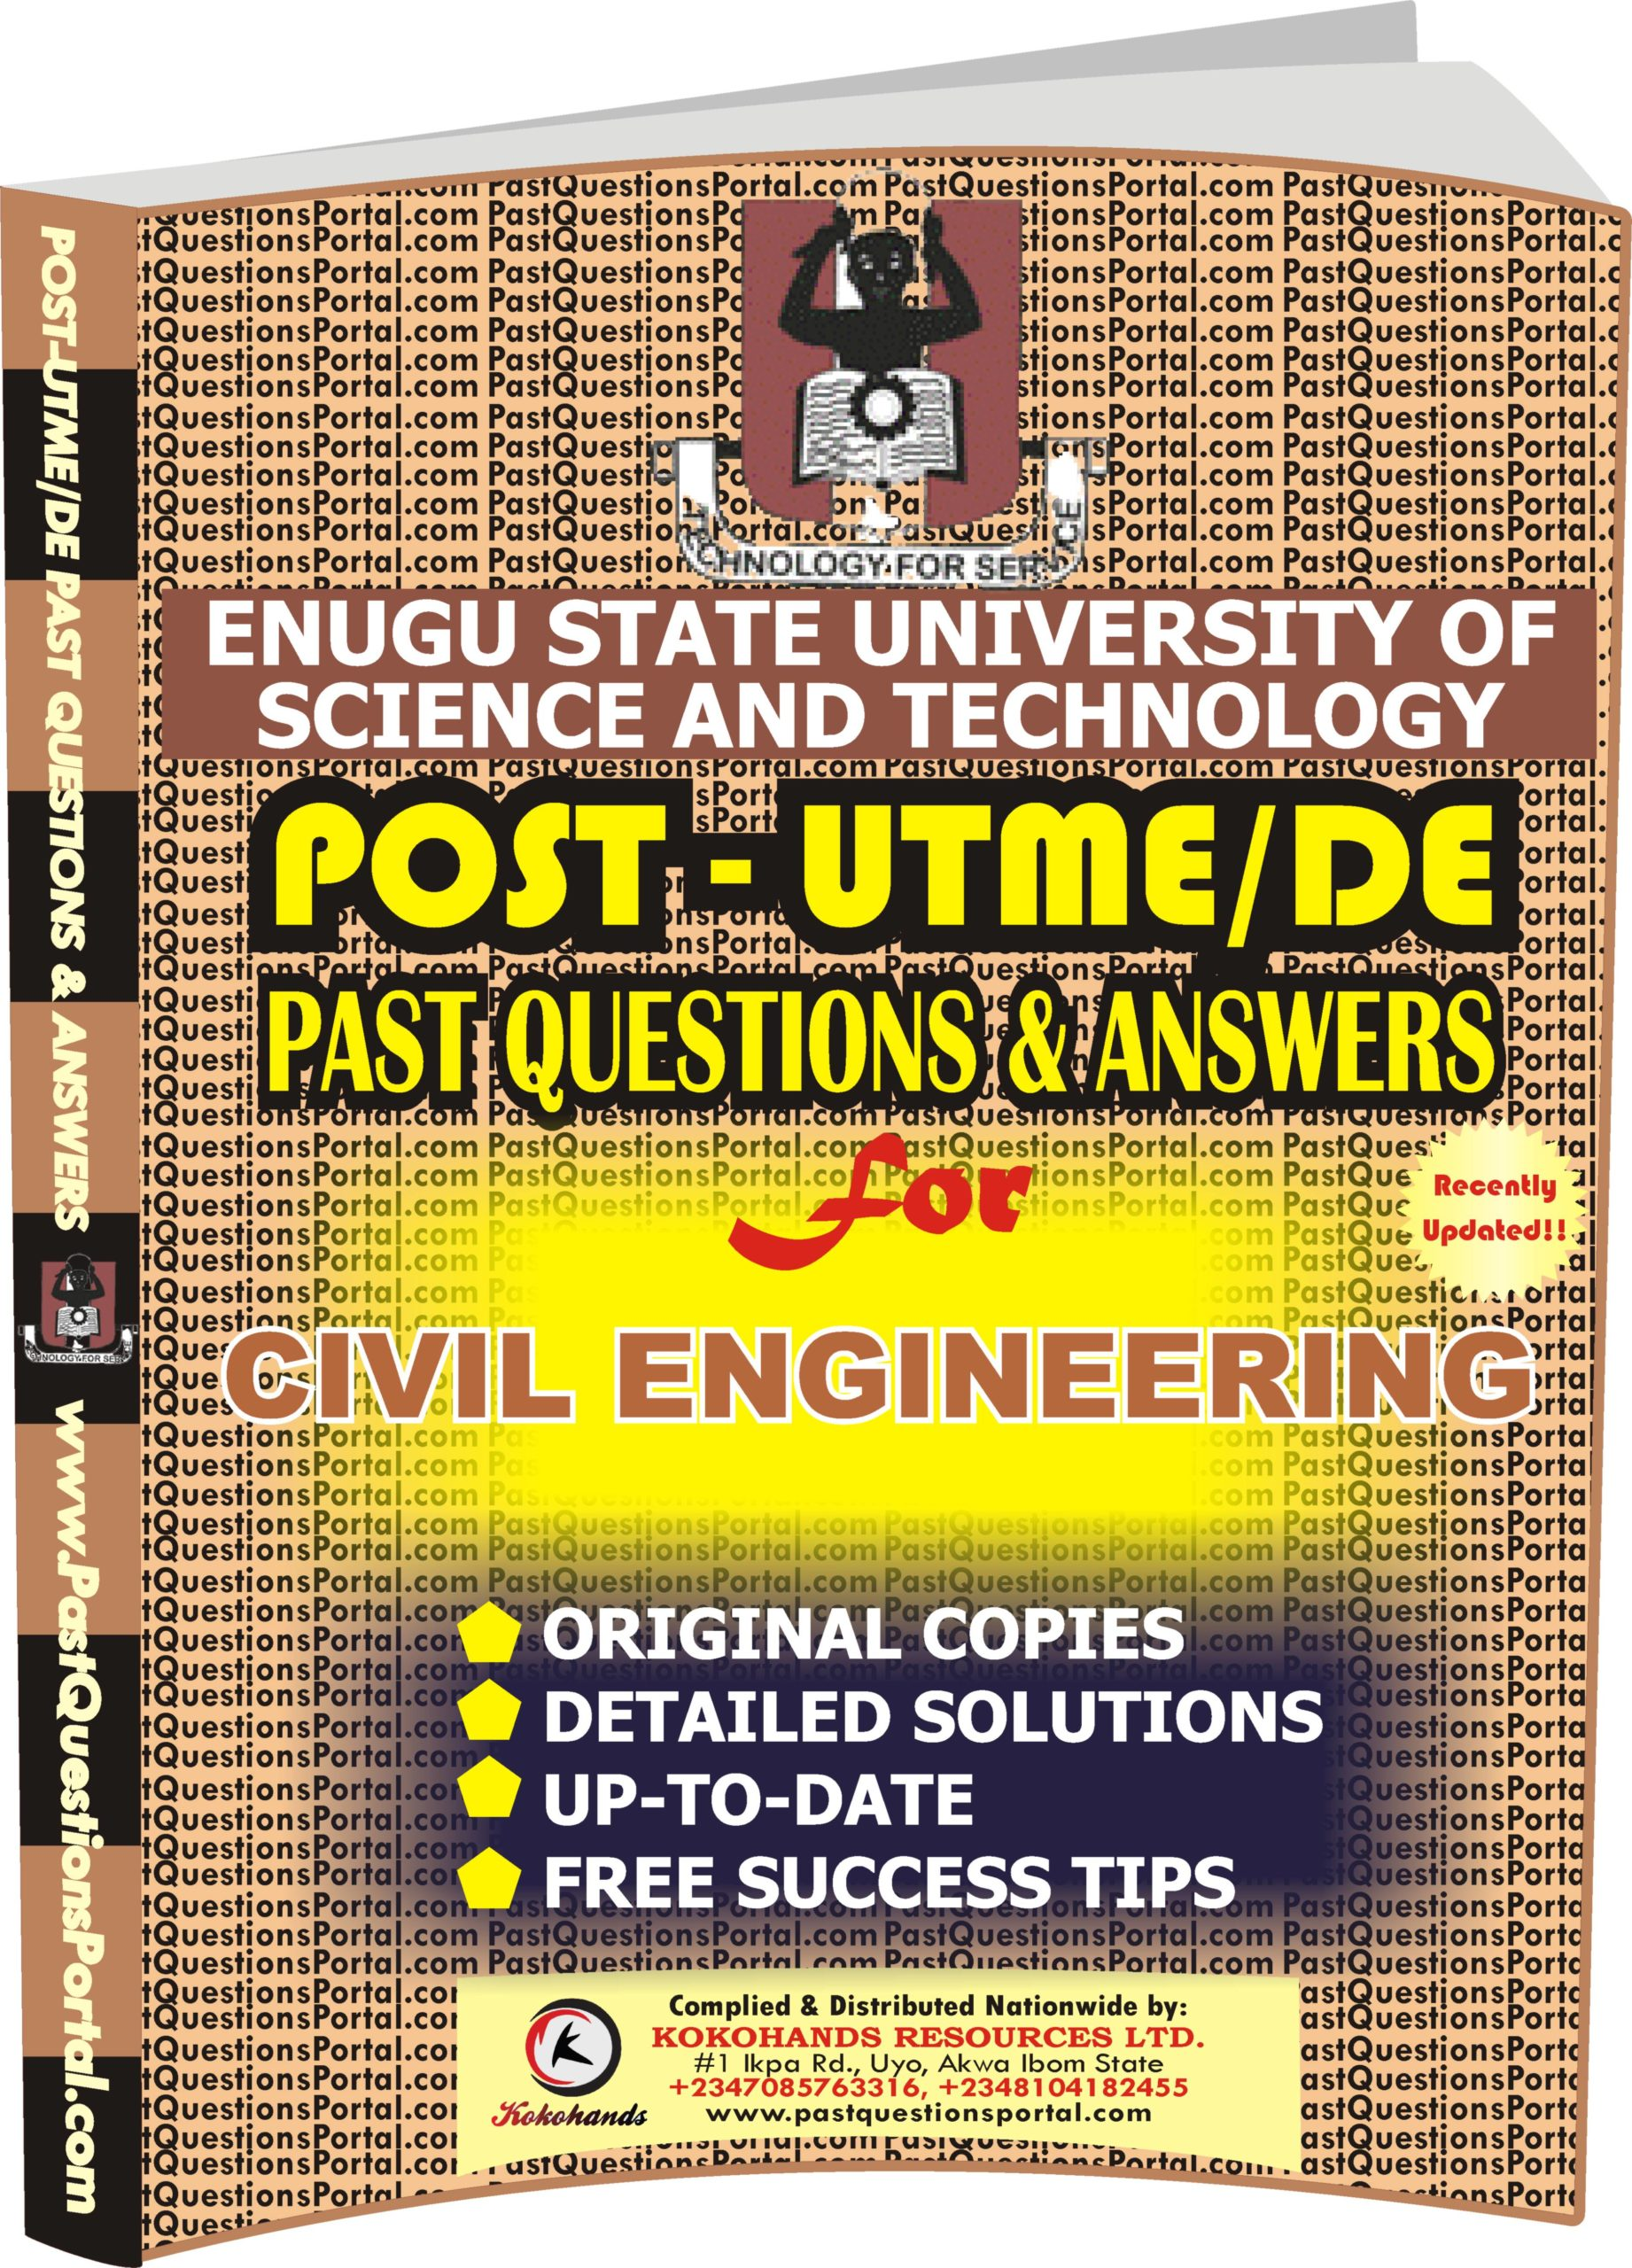 ESUT Post UTME Past Questions for CIVIL ENGINEERING